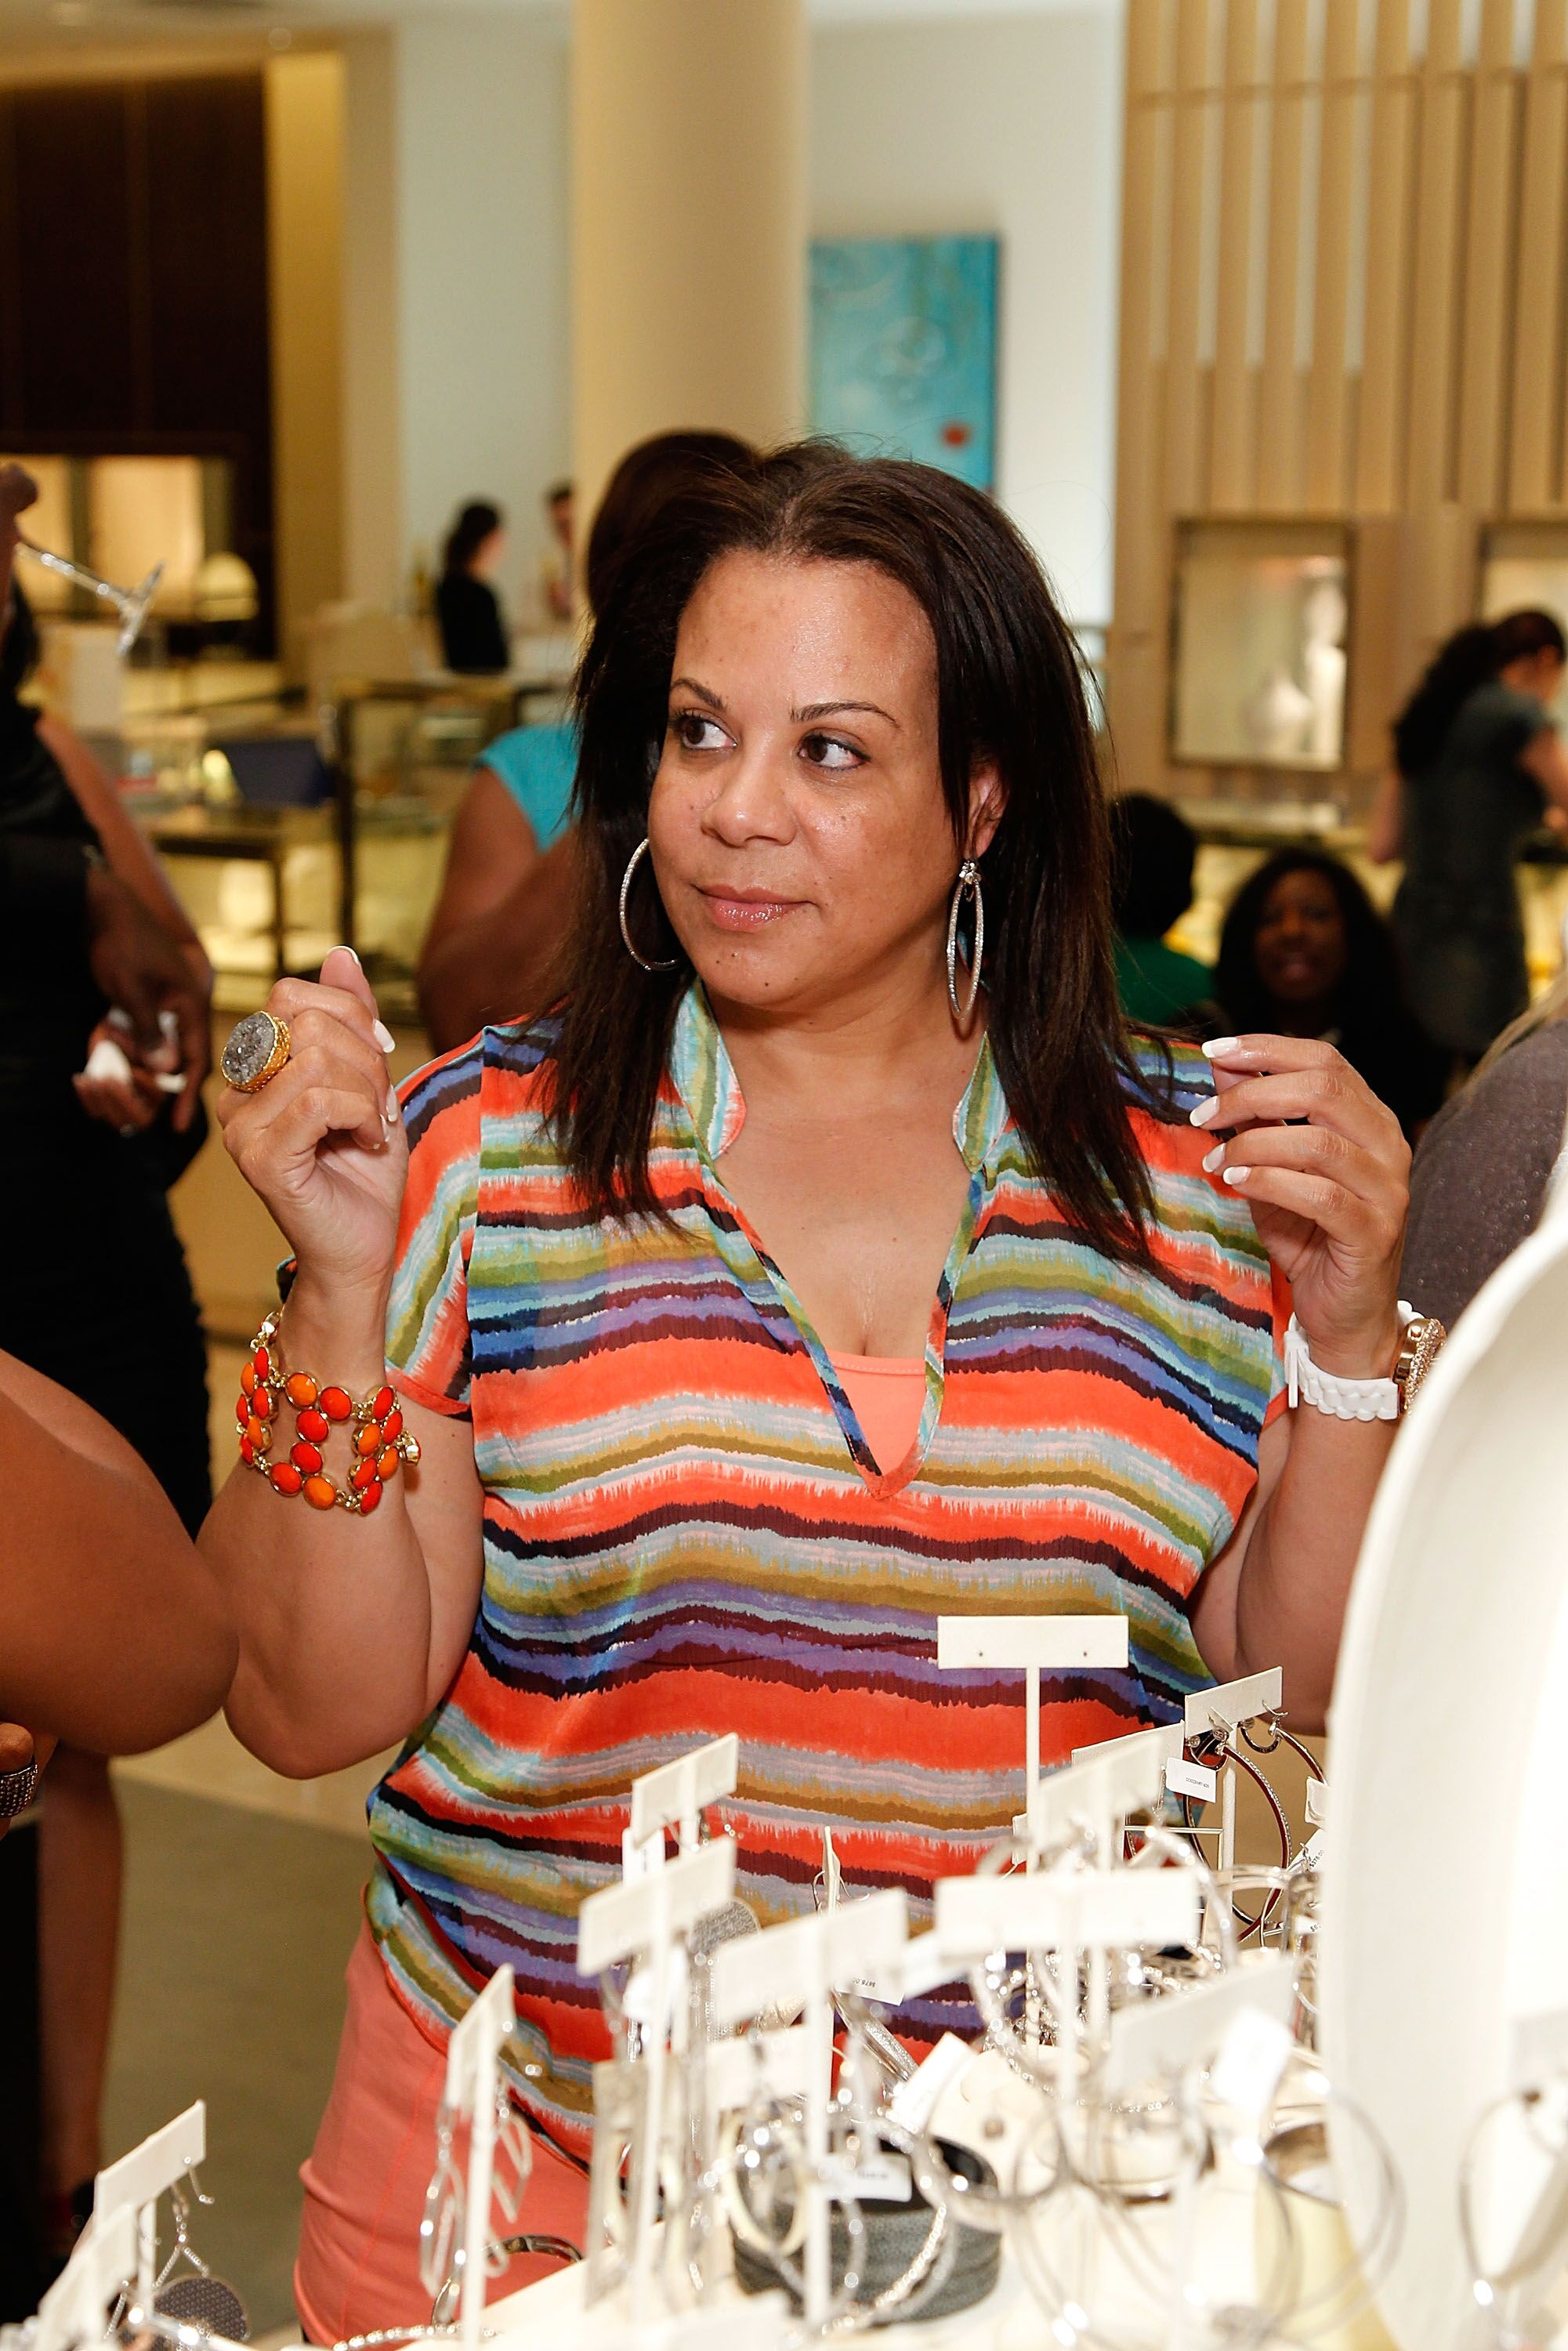 Juanita Vanoy attends the Simone I. Smith Trunk Show at Neiman Marcus Atlanta in 2012 | Source: Getty Images